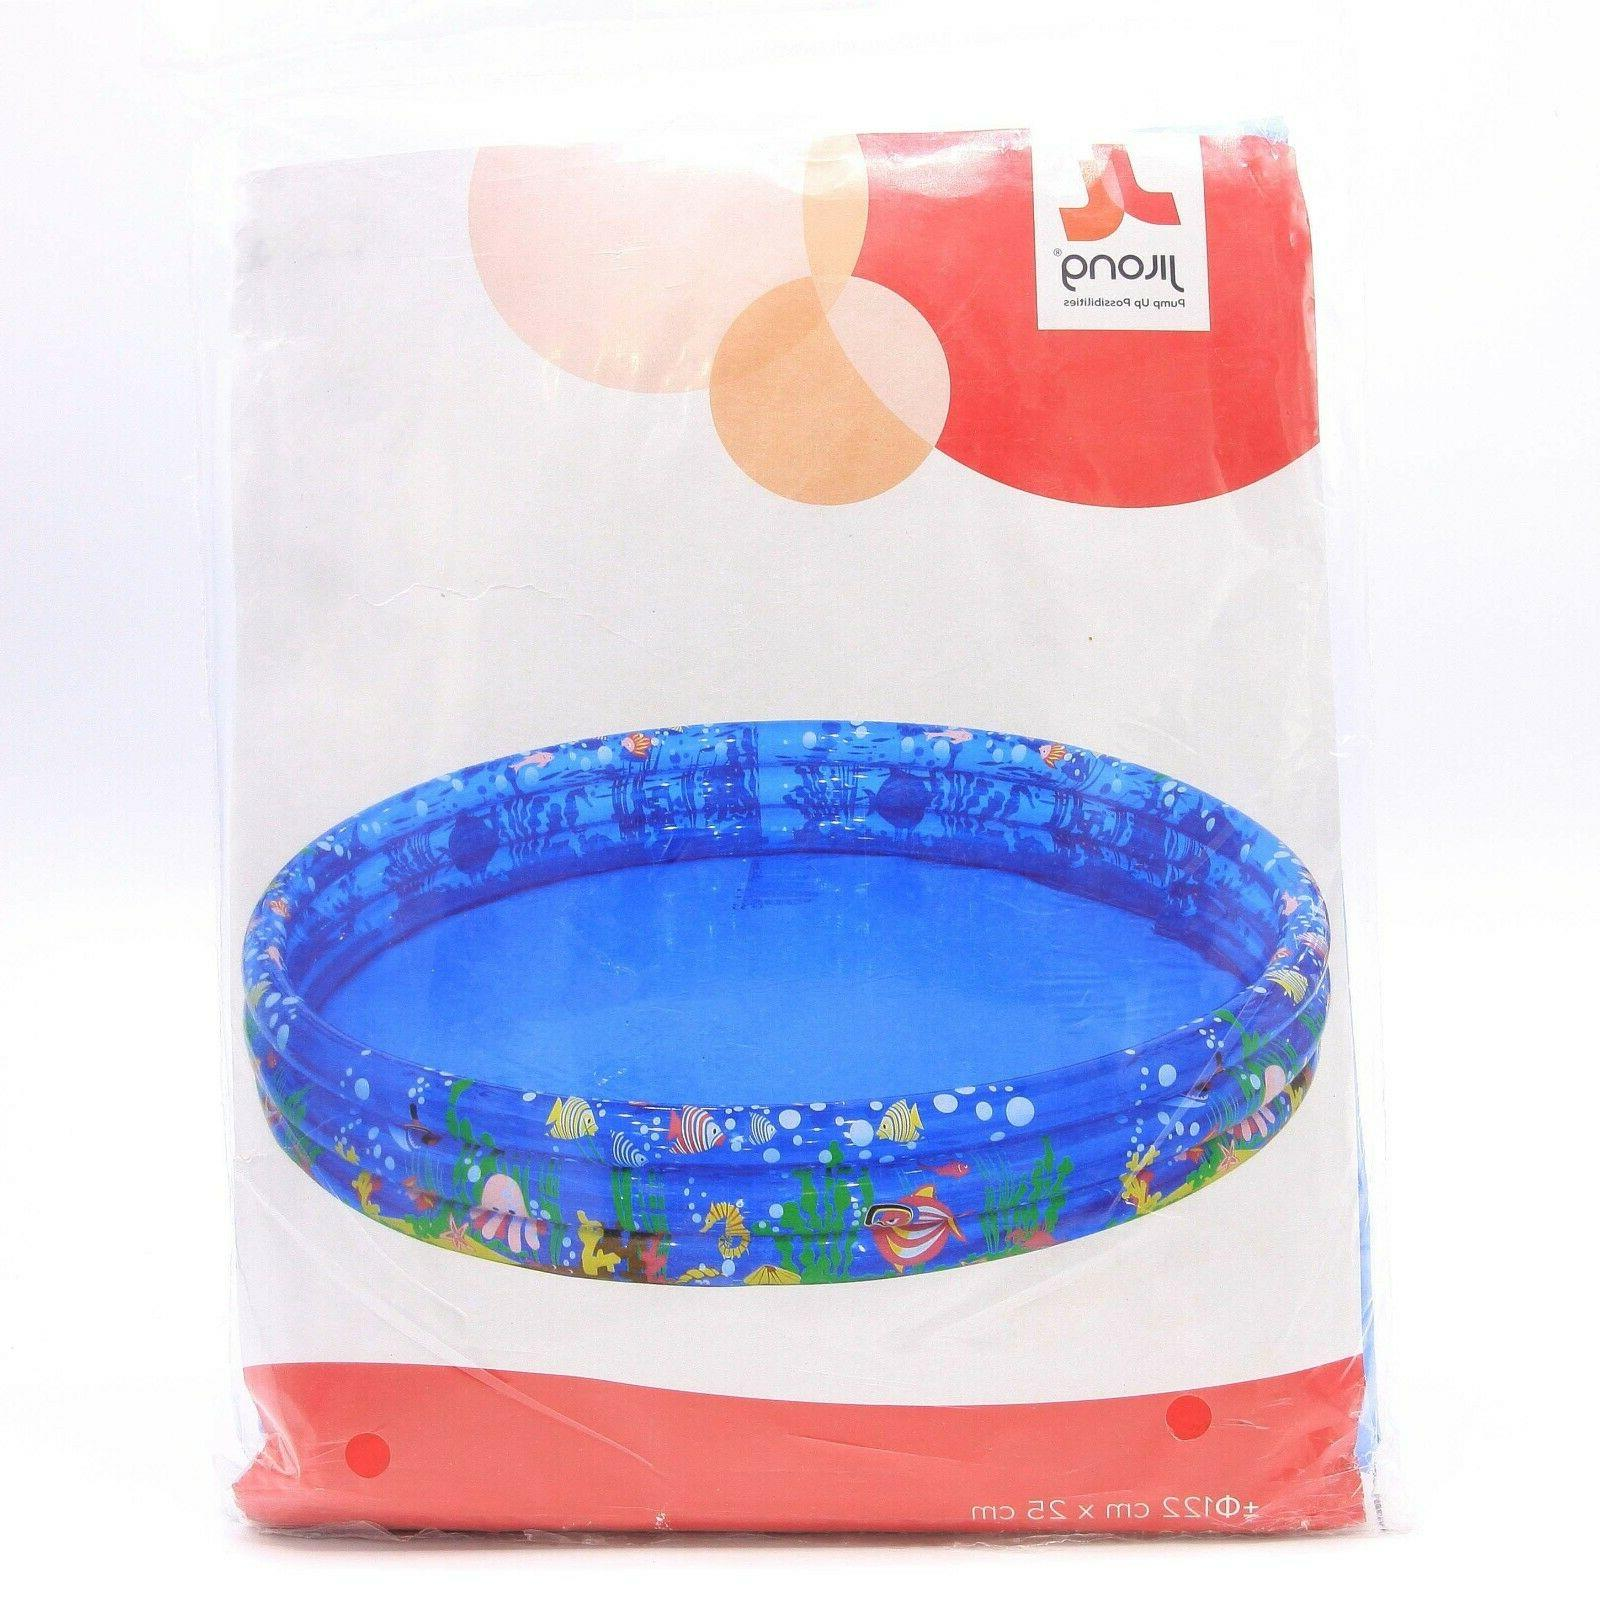 Portable Swimming Pool 48 Round Kids Above Ground Toy